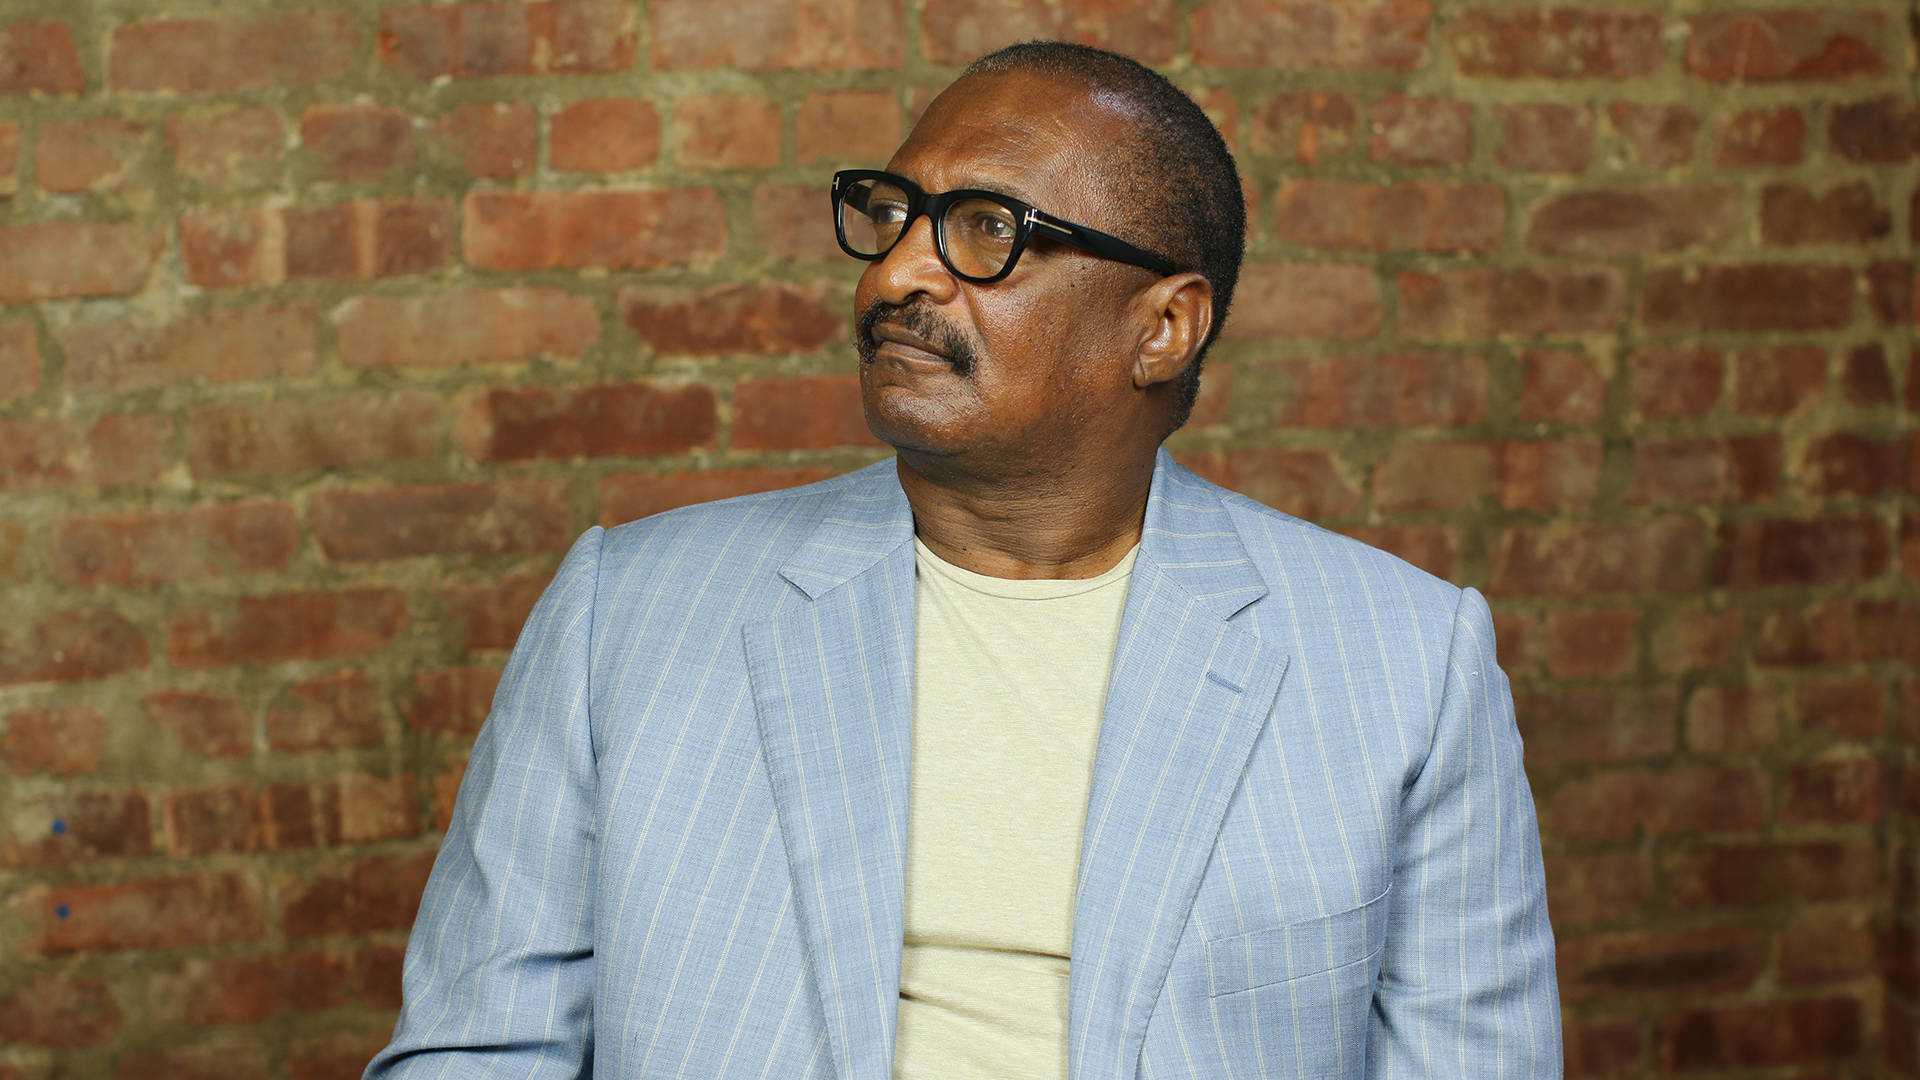 Mathew Knowles: Is Education and Knowledge the Same Thing? — Photo Credit: Shefik